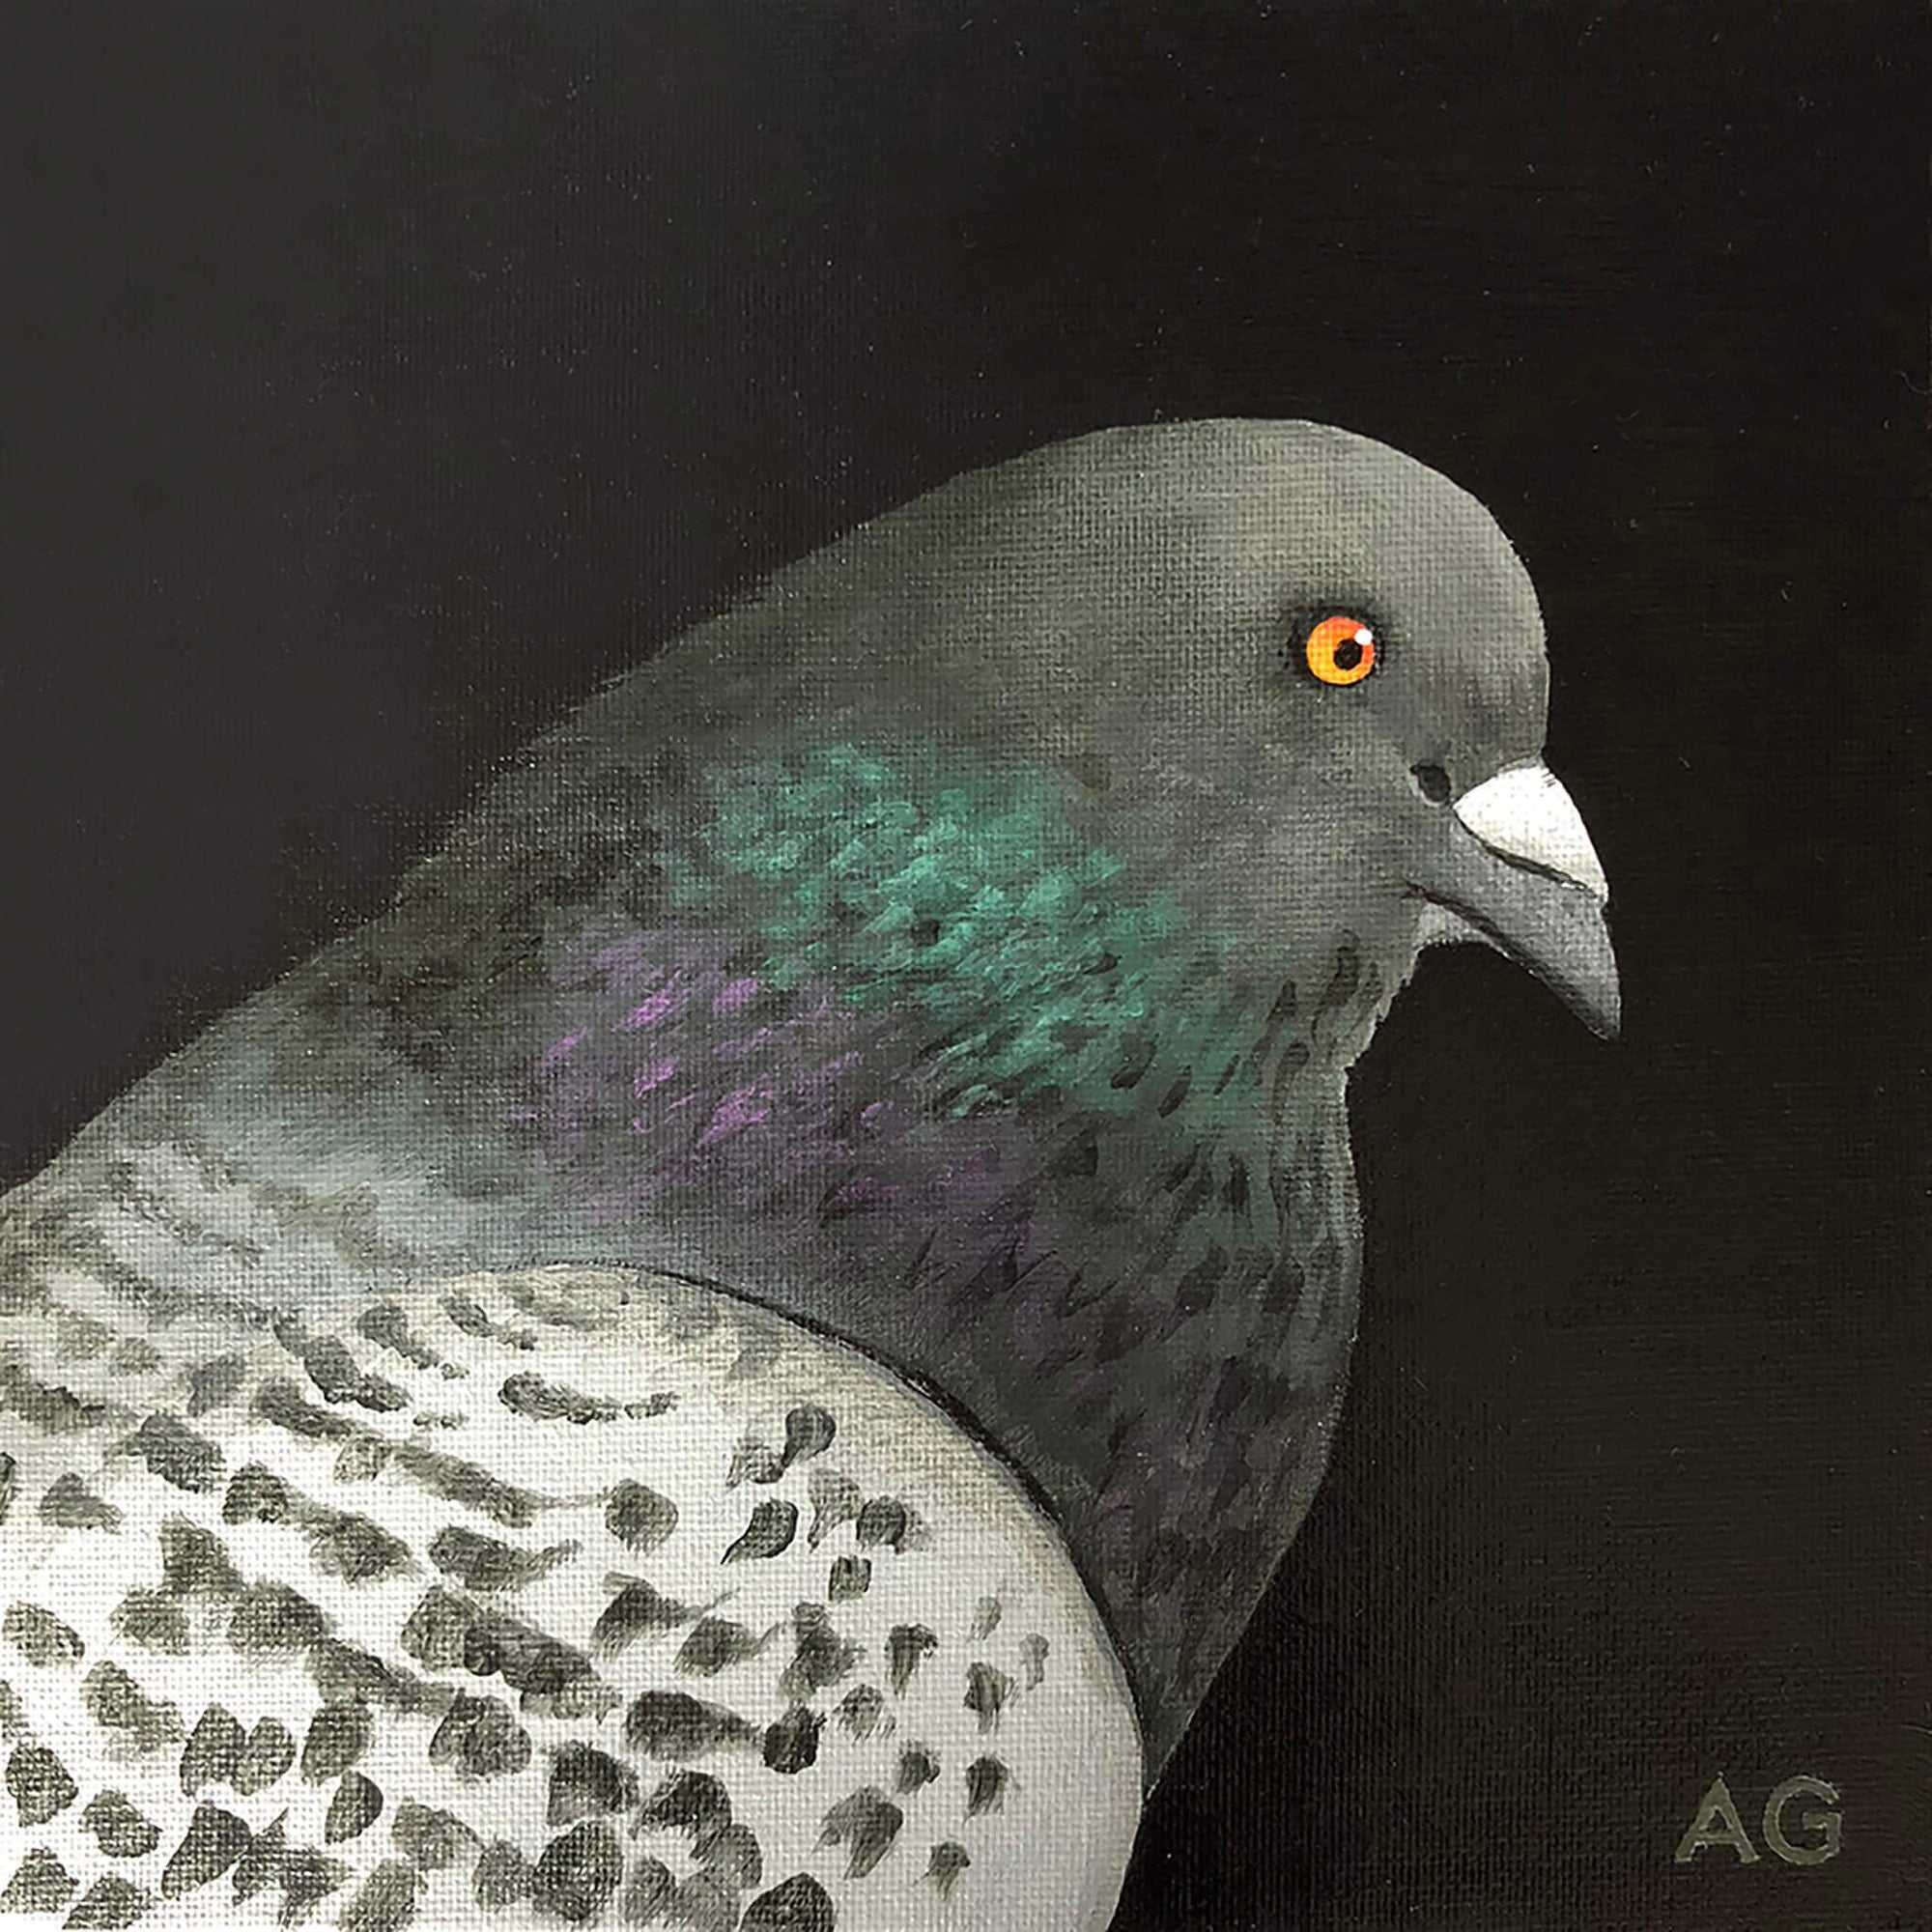 Pigeon head and shoulders bird portrait painting by Amanda Gosse. Acrylic on canvas small artwork.